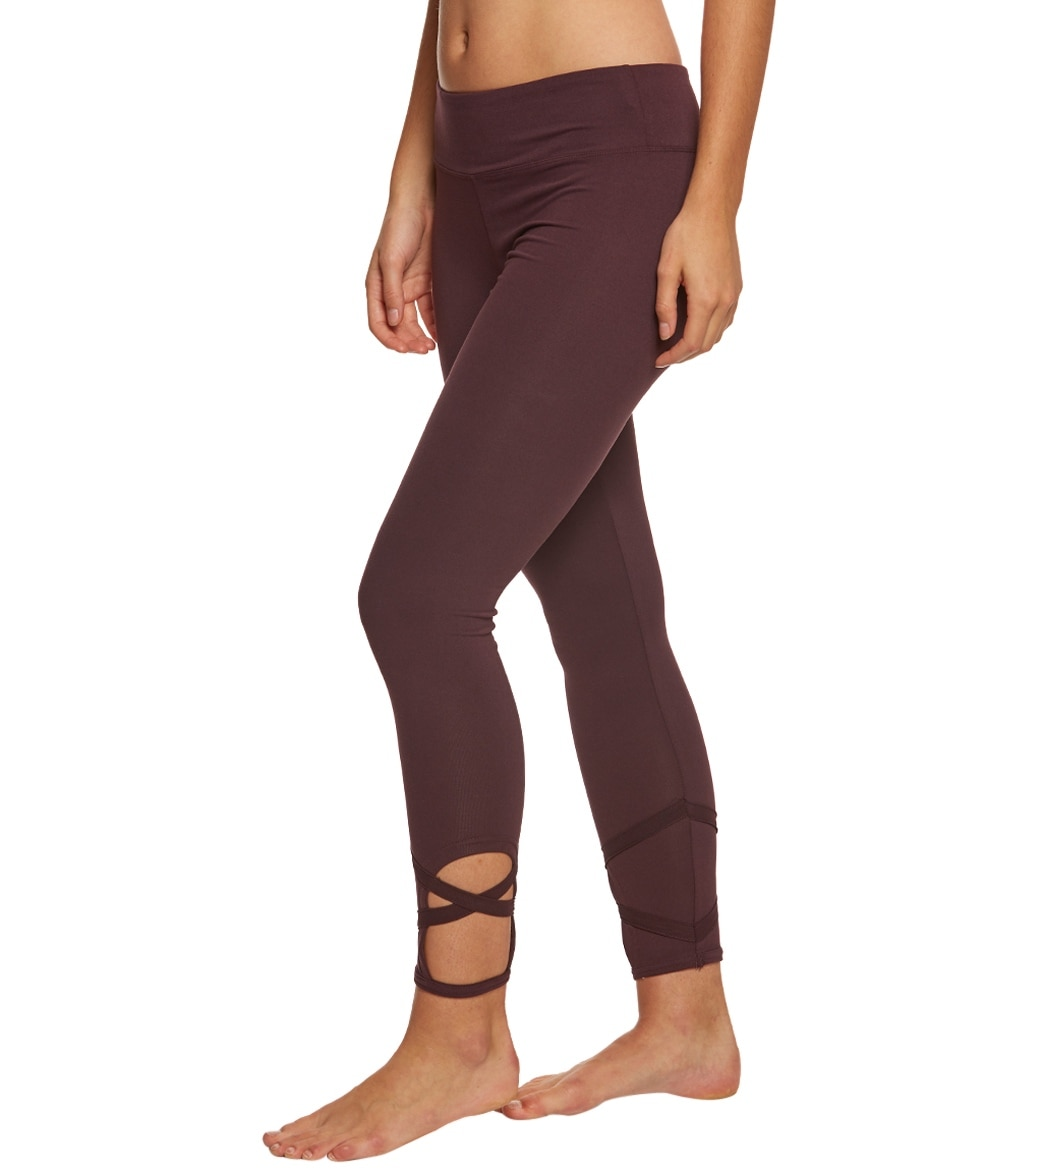 Trend Cutout Yoga Clothes At Fashion Big Size Valerie Stripe Pants Navy 3xl Balance Collection Strappy Leggings